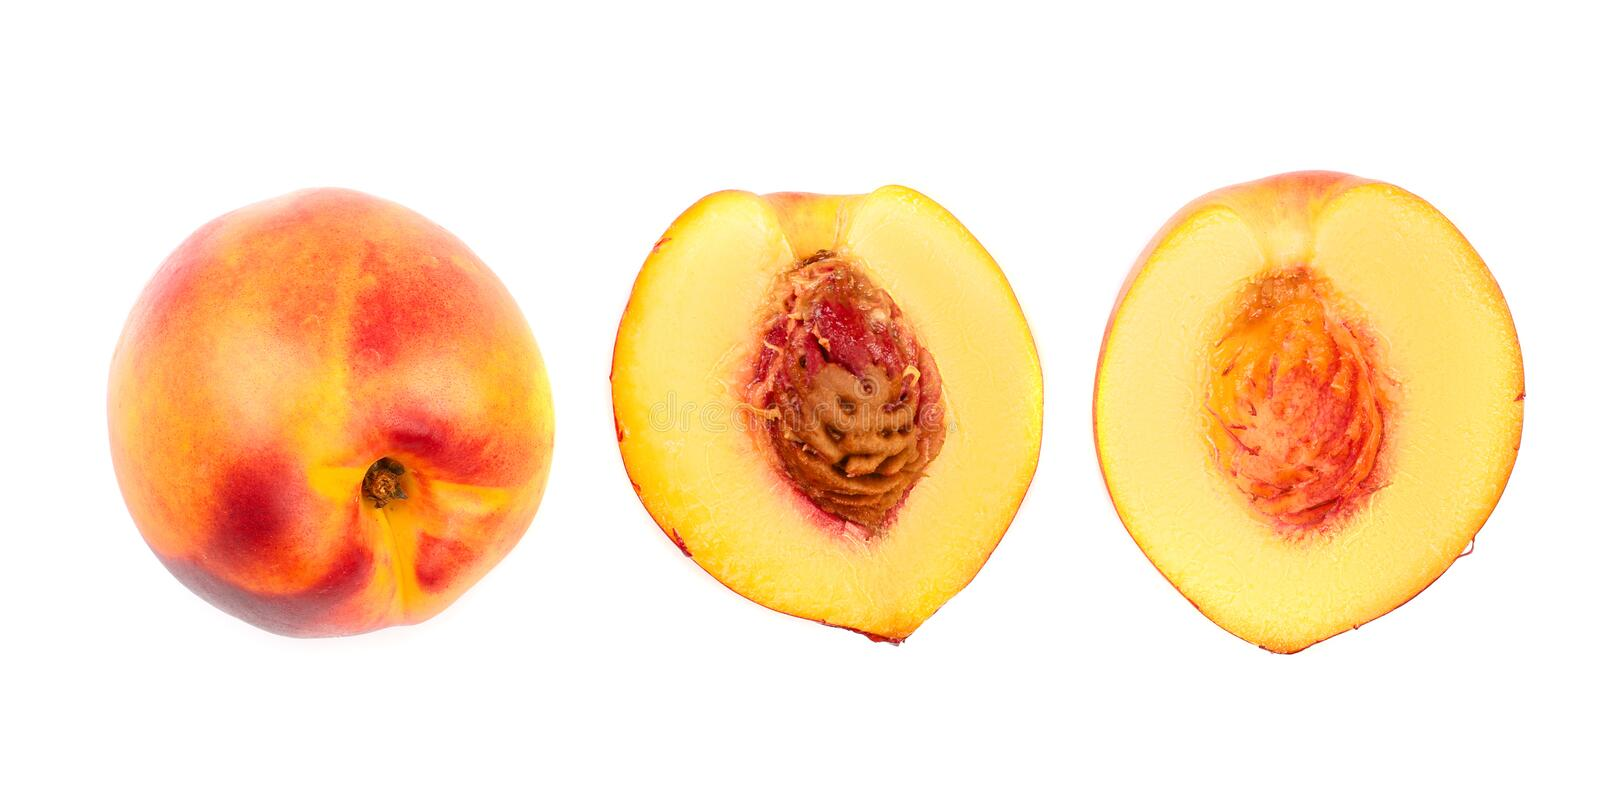 Ripe nectarine isolated on white background. Top view. Flat lay pattern.  stock images